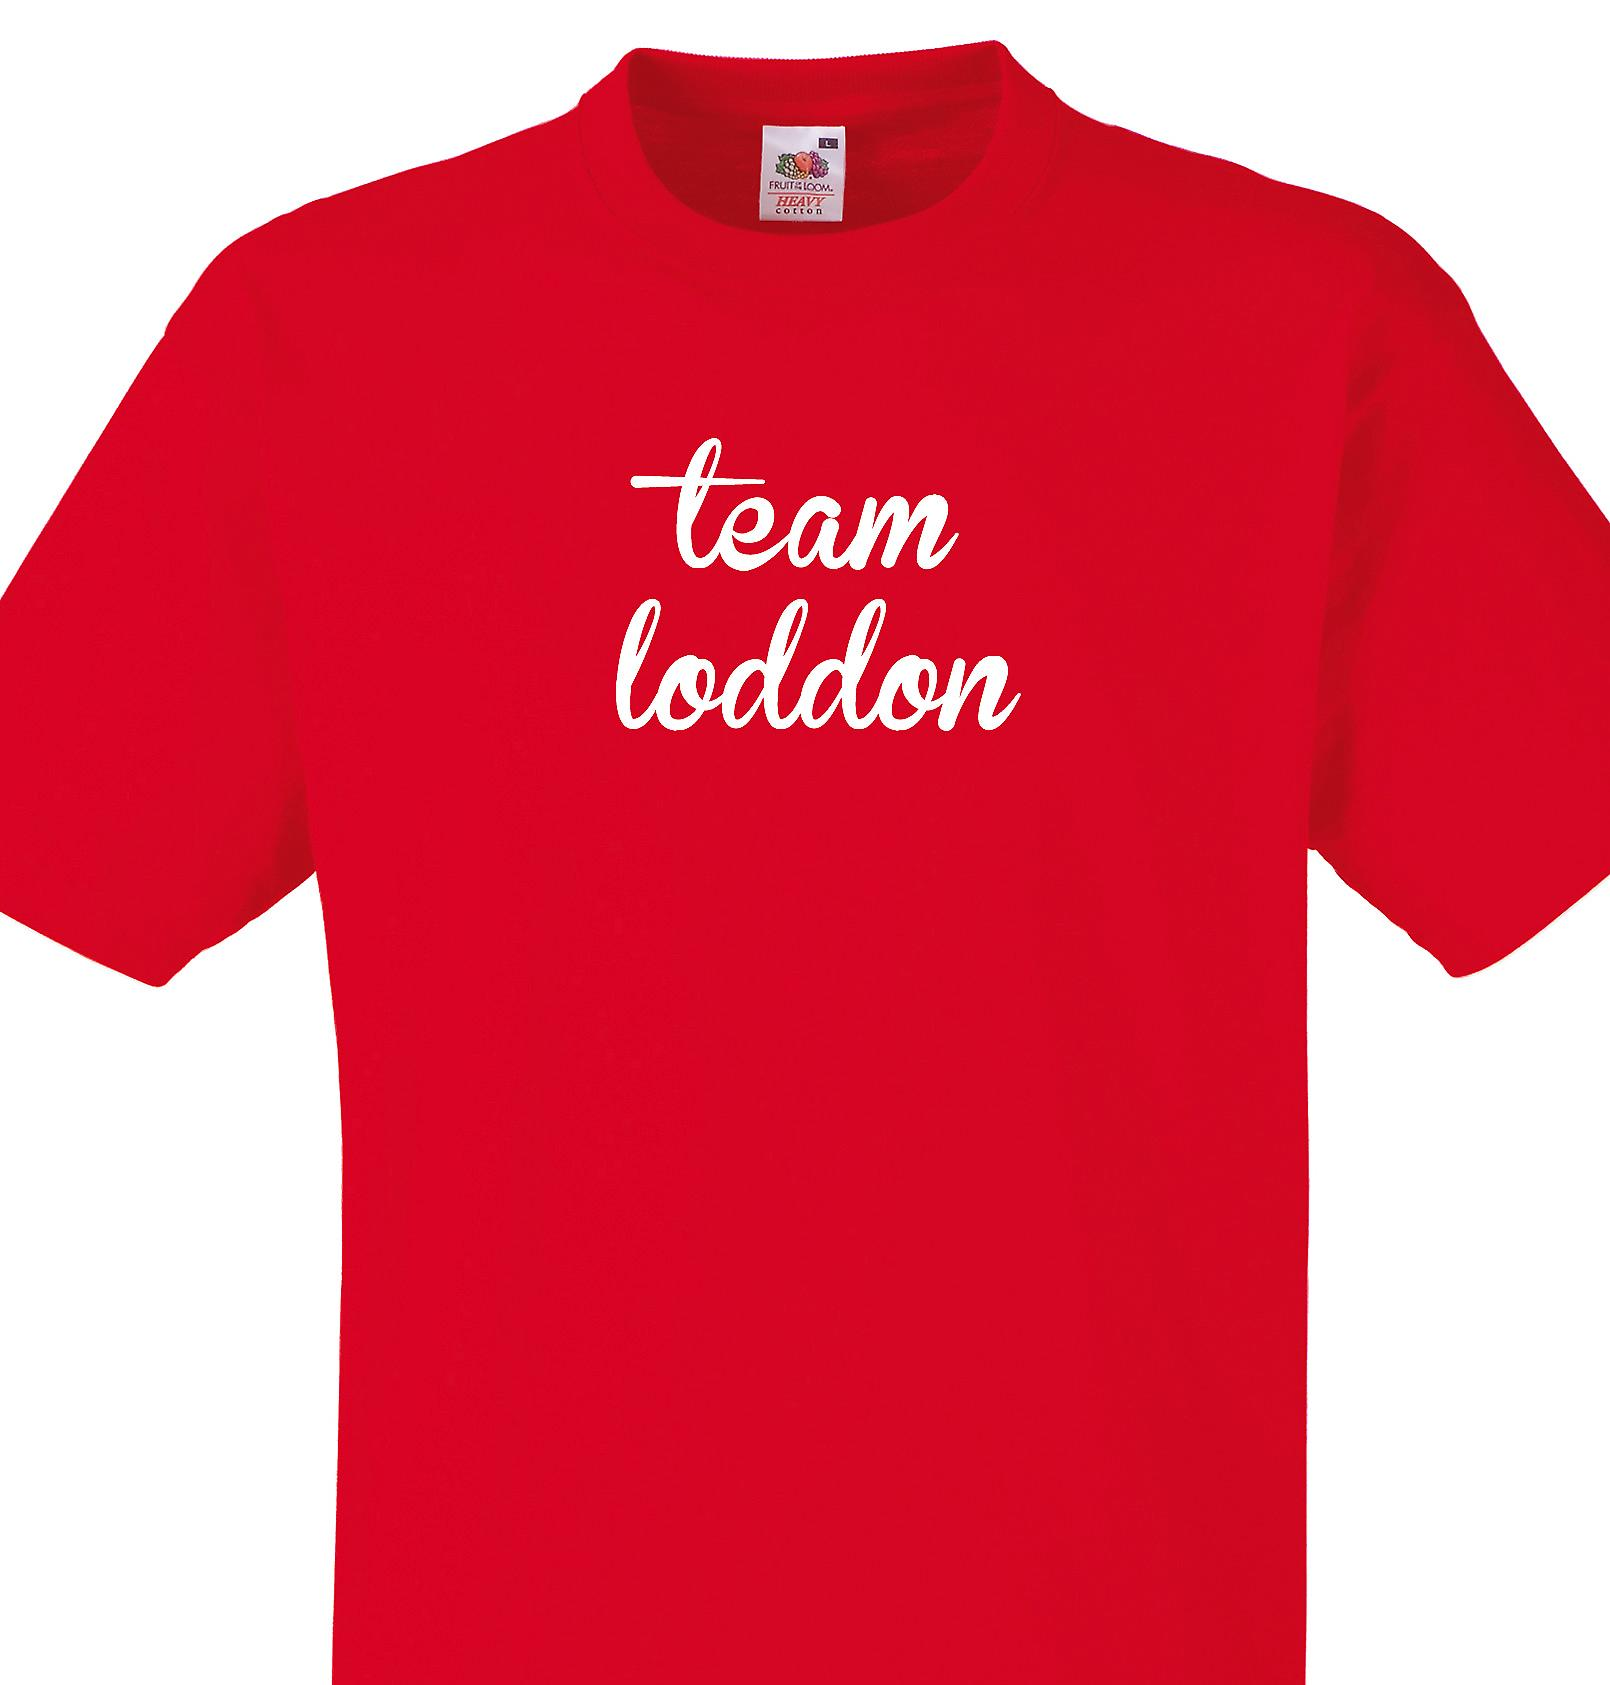 Team Loddon Red T shirt